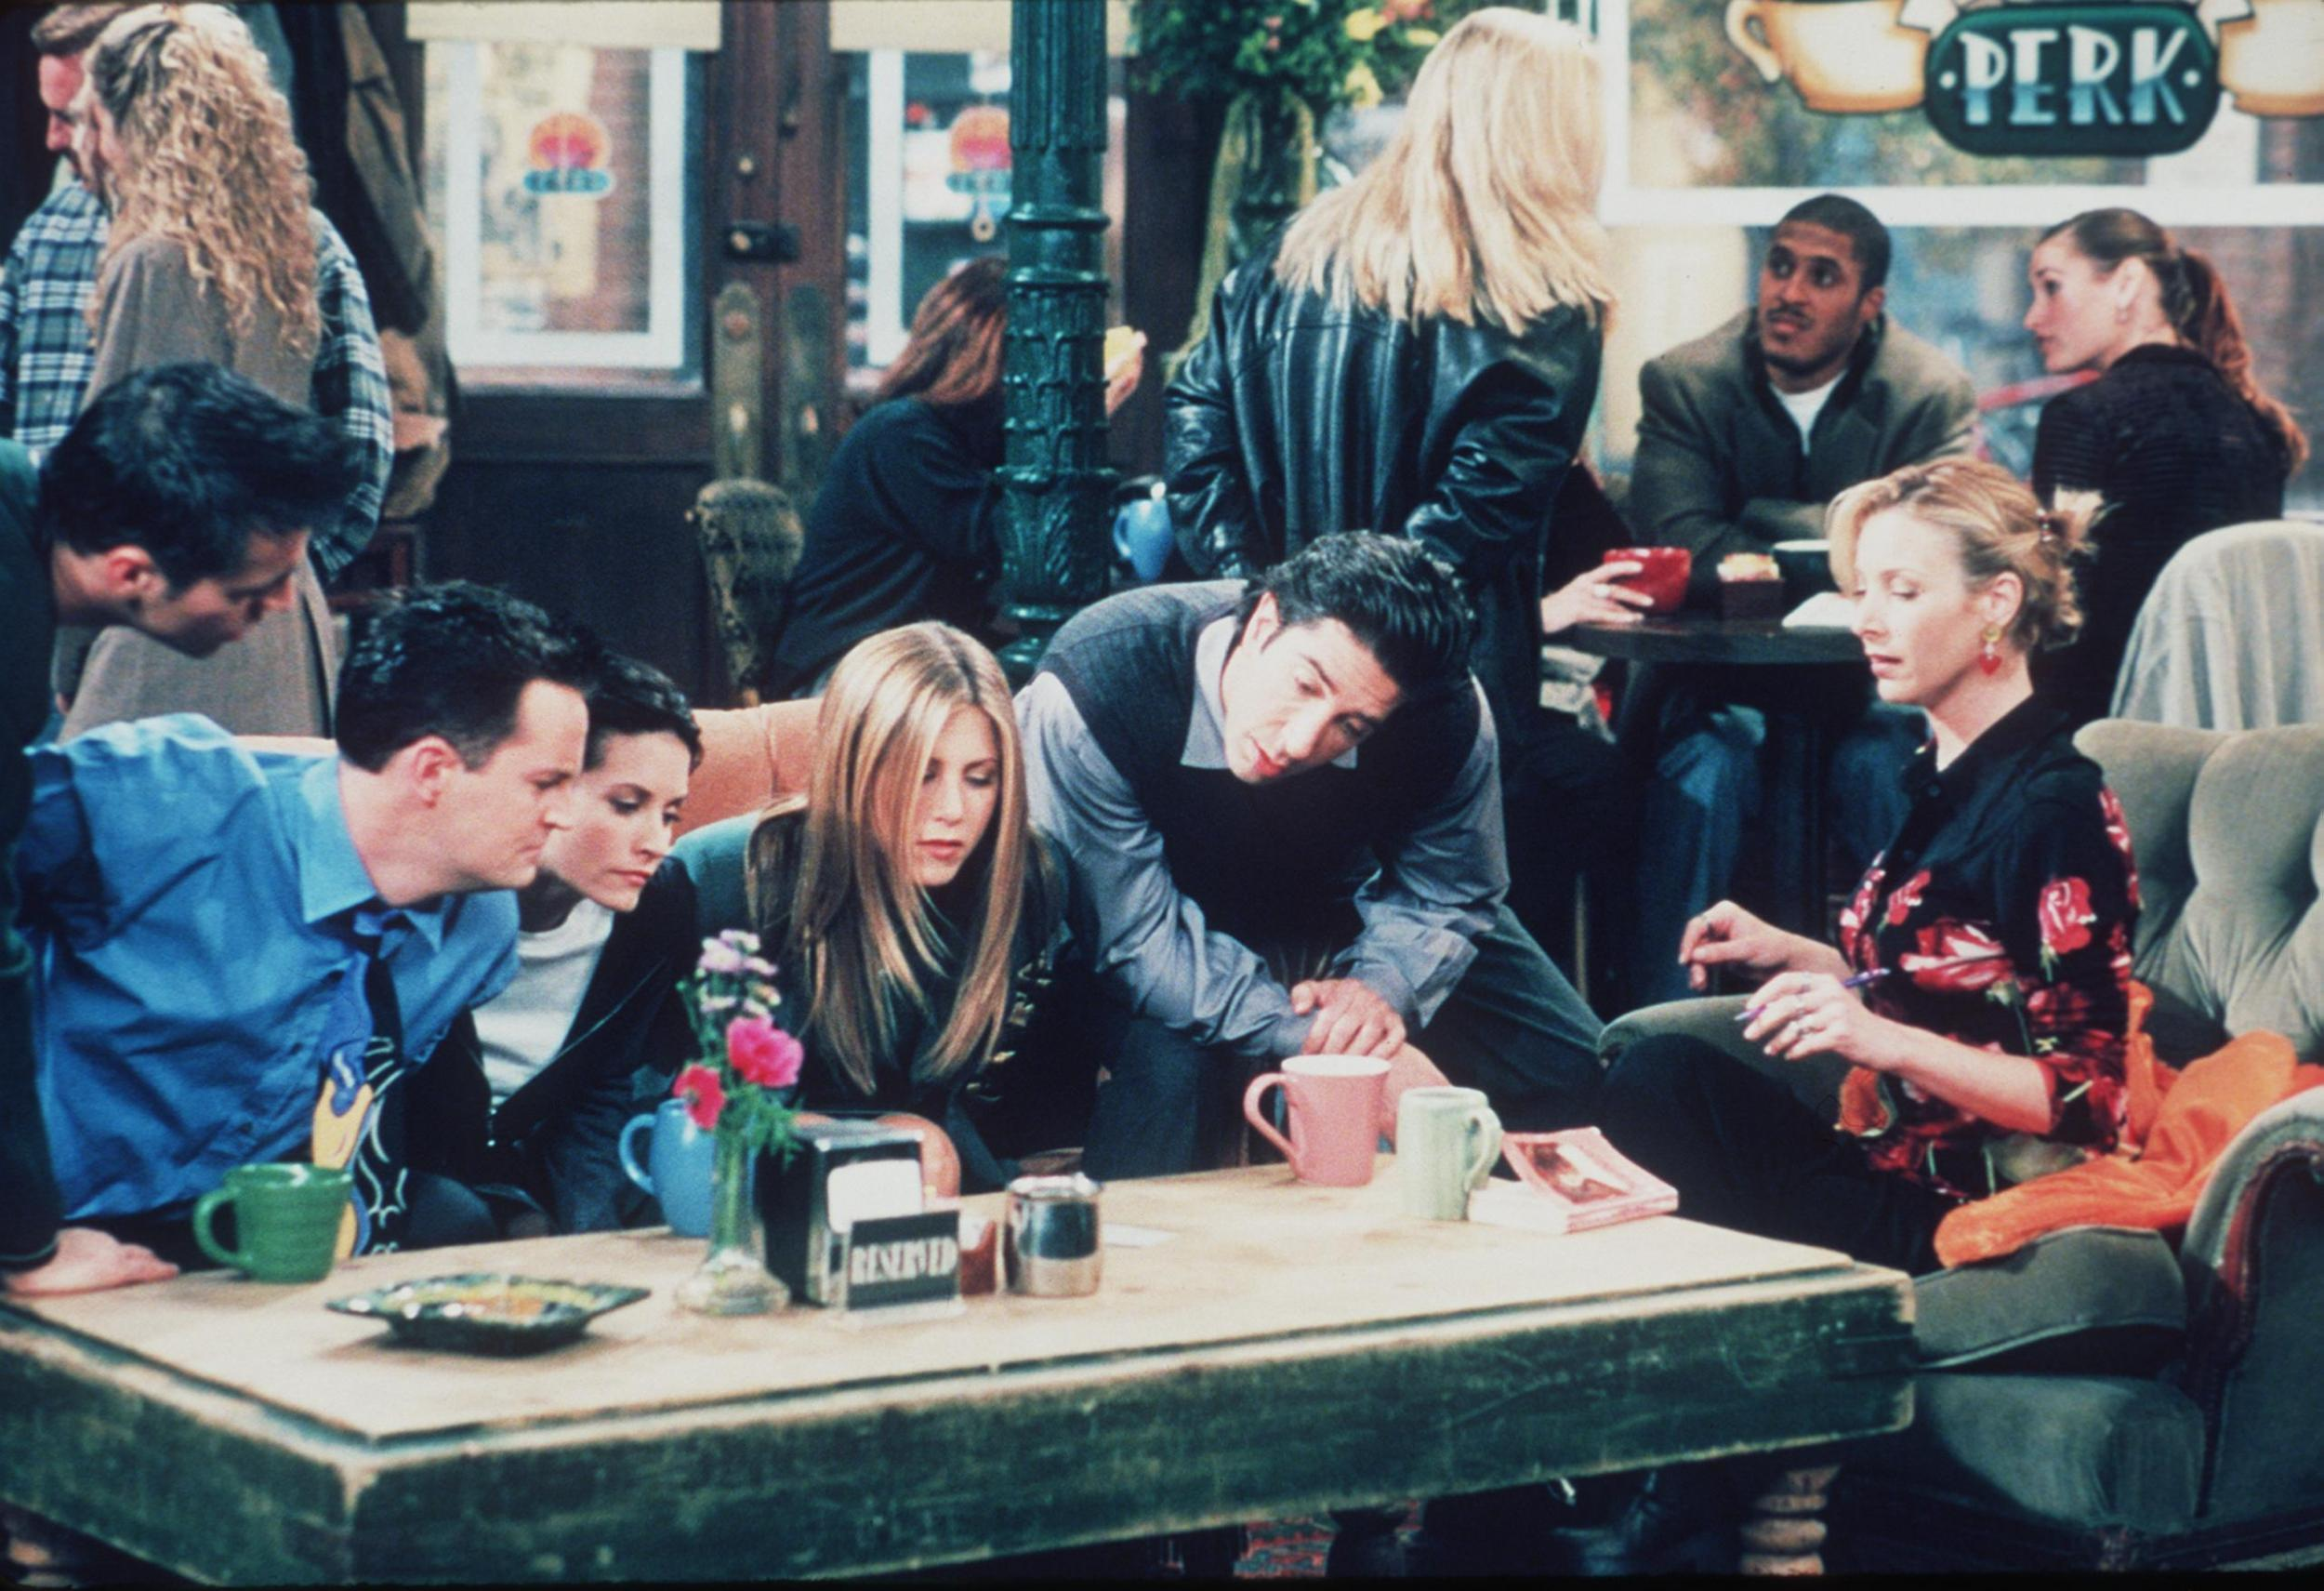 Courteney Cox shares Friends cast throwback photo taken before the show aired